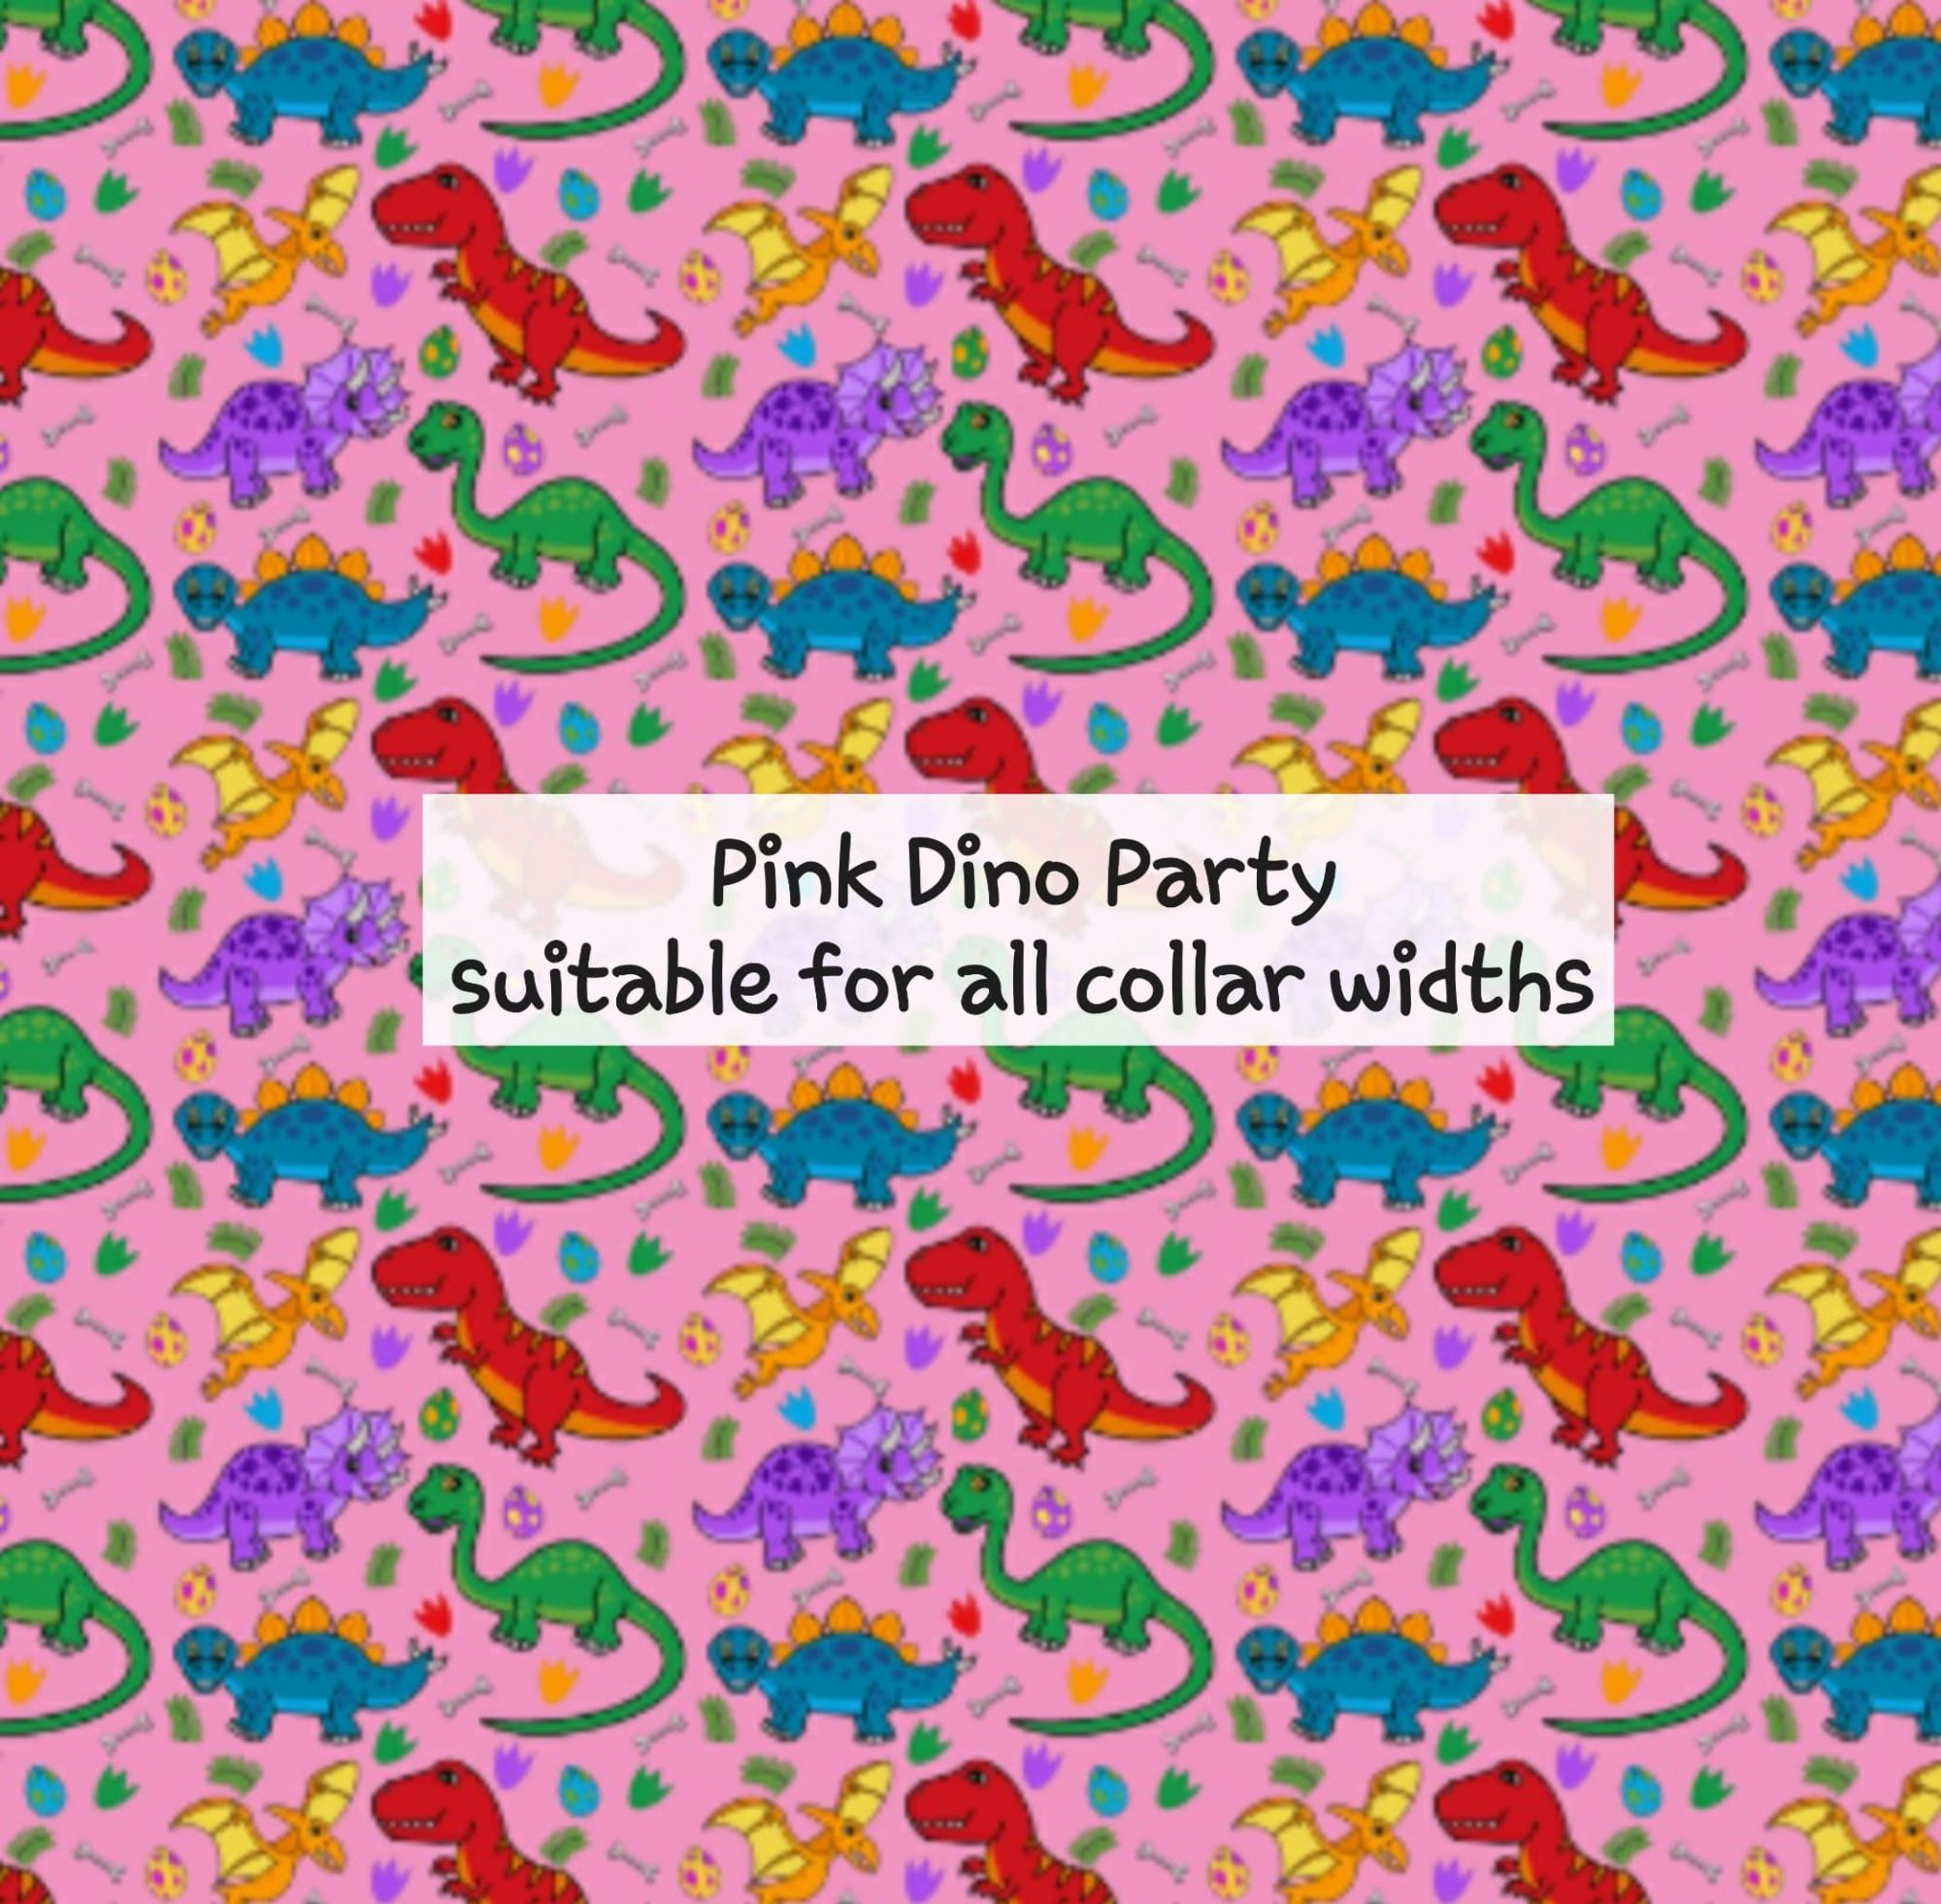 Pink Dino Party